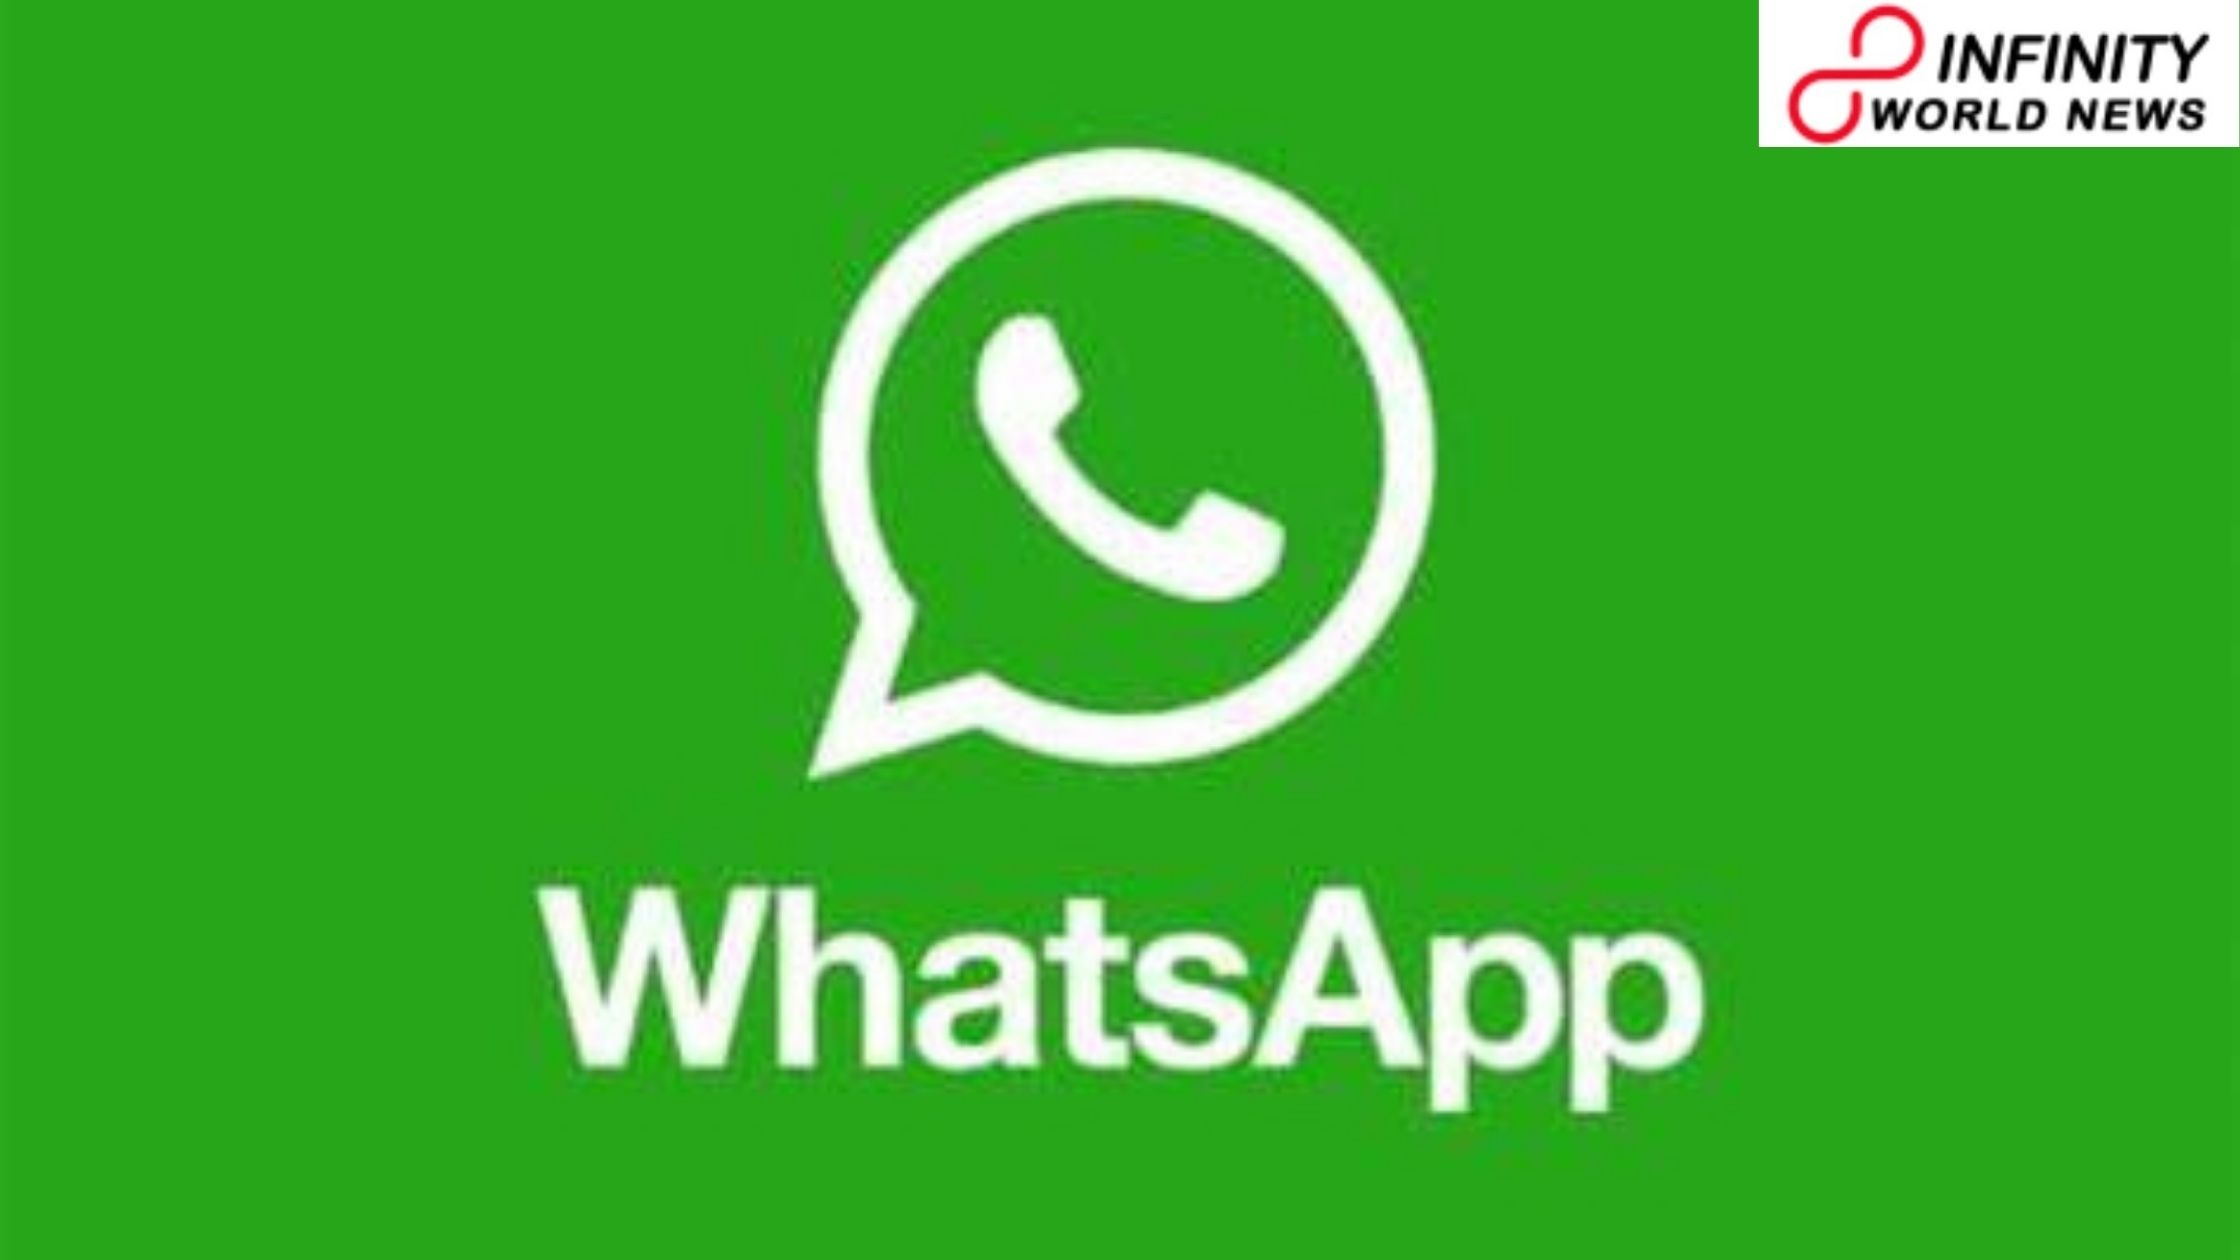 WhatsApp Begins New 'Add to Cart' Button to Improve Shopping Experience